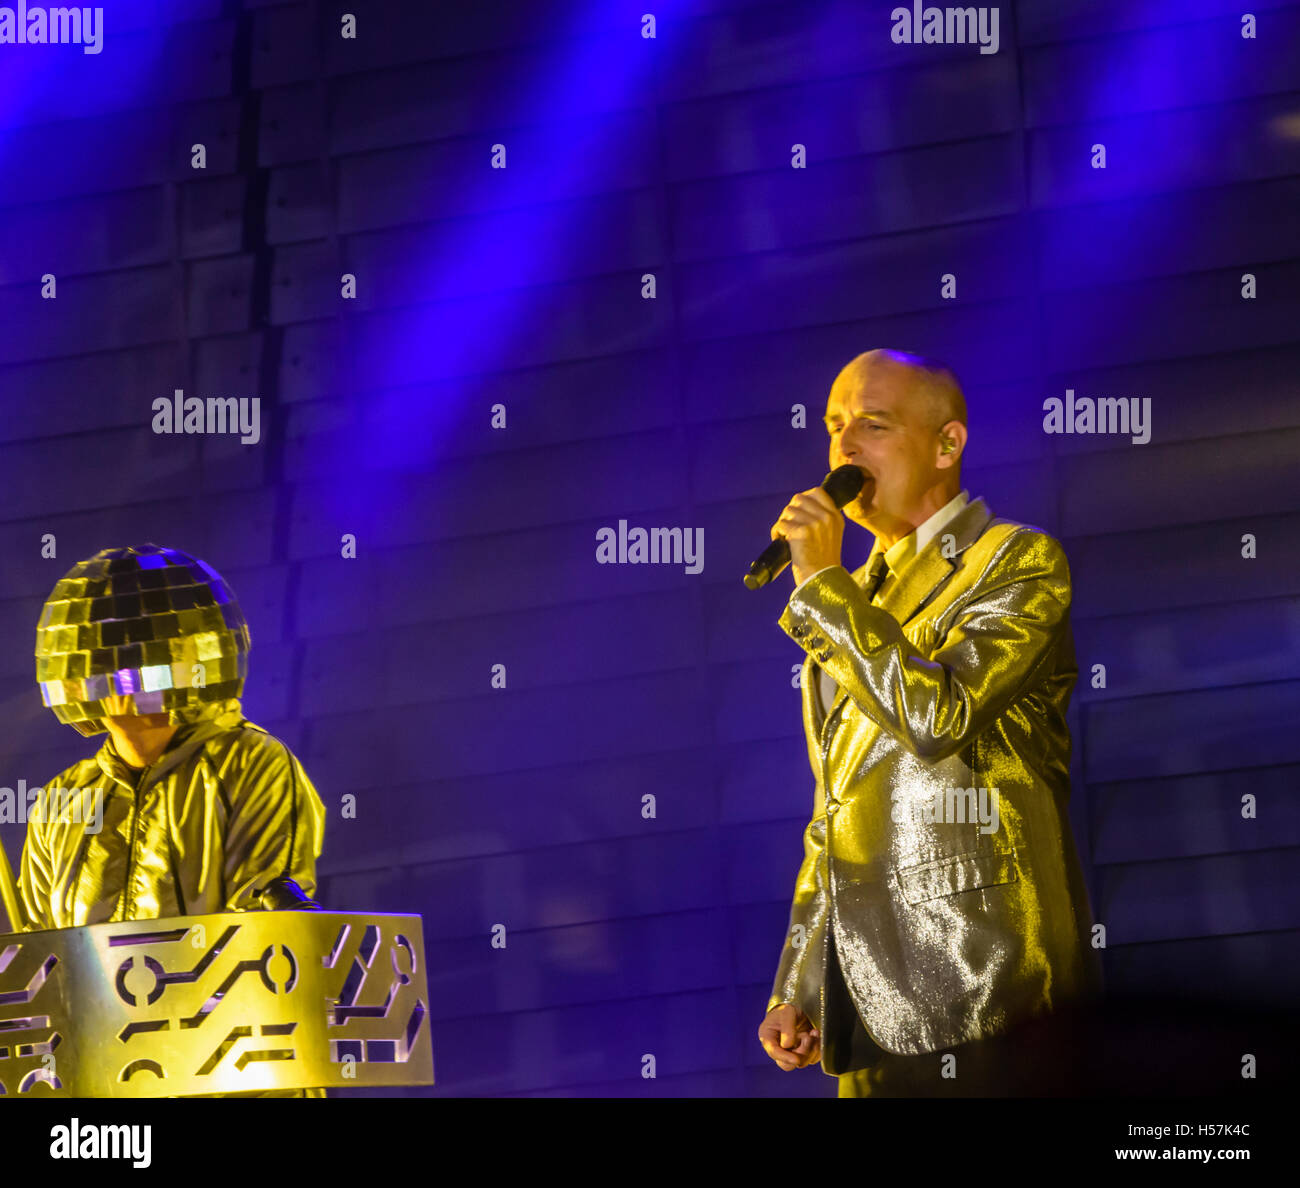 Pet Shop Boys performing at Festival No.6, Portmeirion, Wales, UK - Stock Image